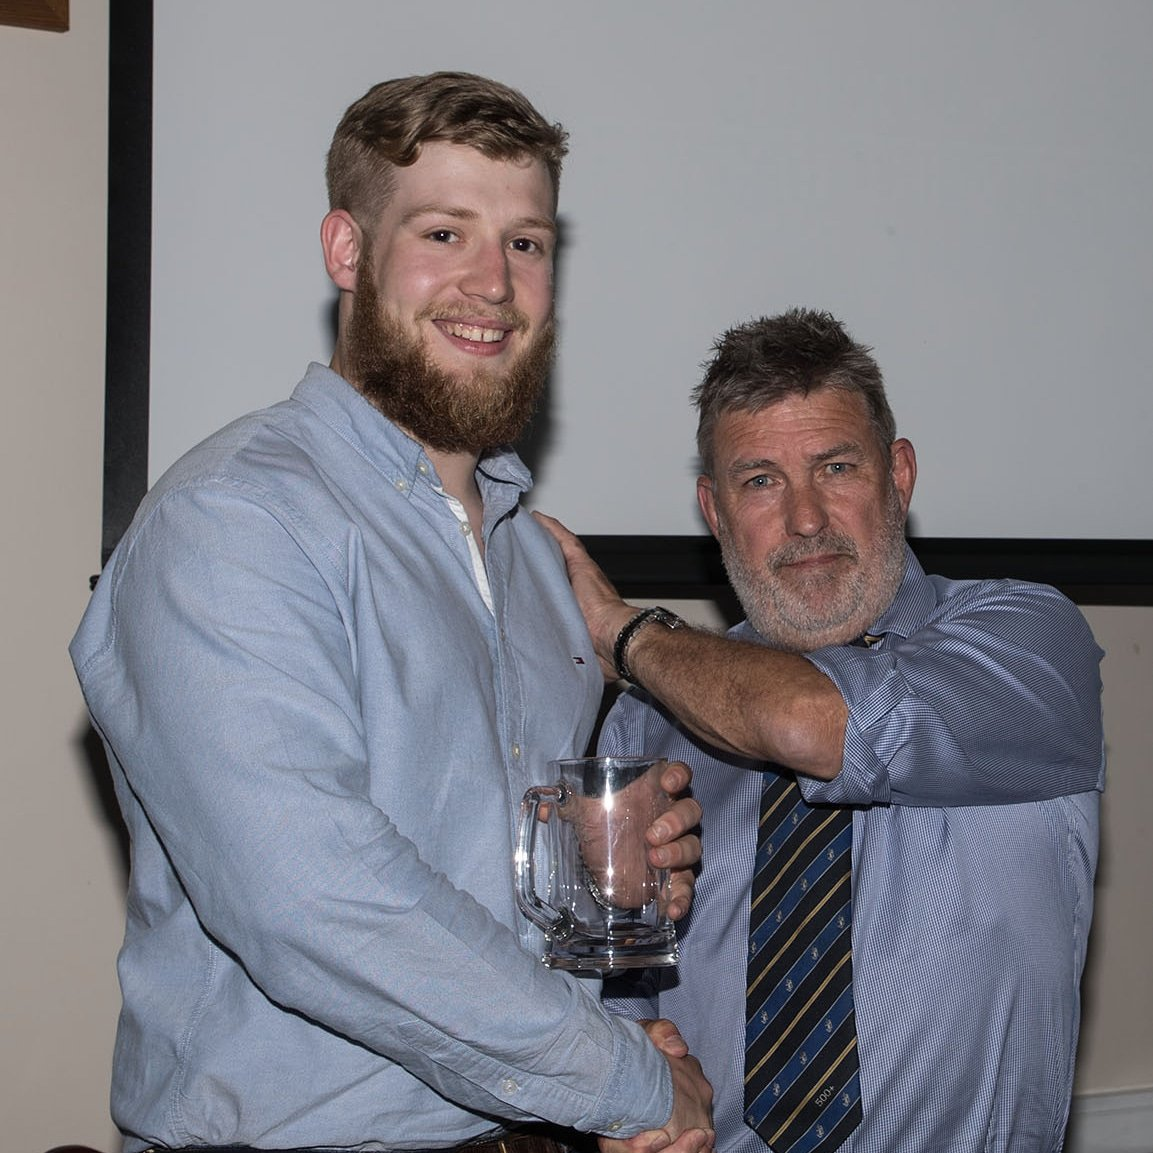 test Twitter Media - When you've just scooped the Chairman's player of the year award... 🏆 #Macclesfield #rugbyfamily #nat2north #cheshire #backingmacc @tomhenryburden @peteharper0071 https://t.co/oTOtxEbwoJ